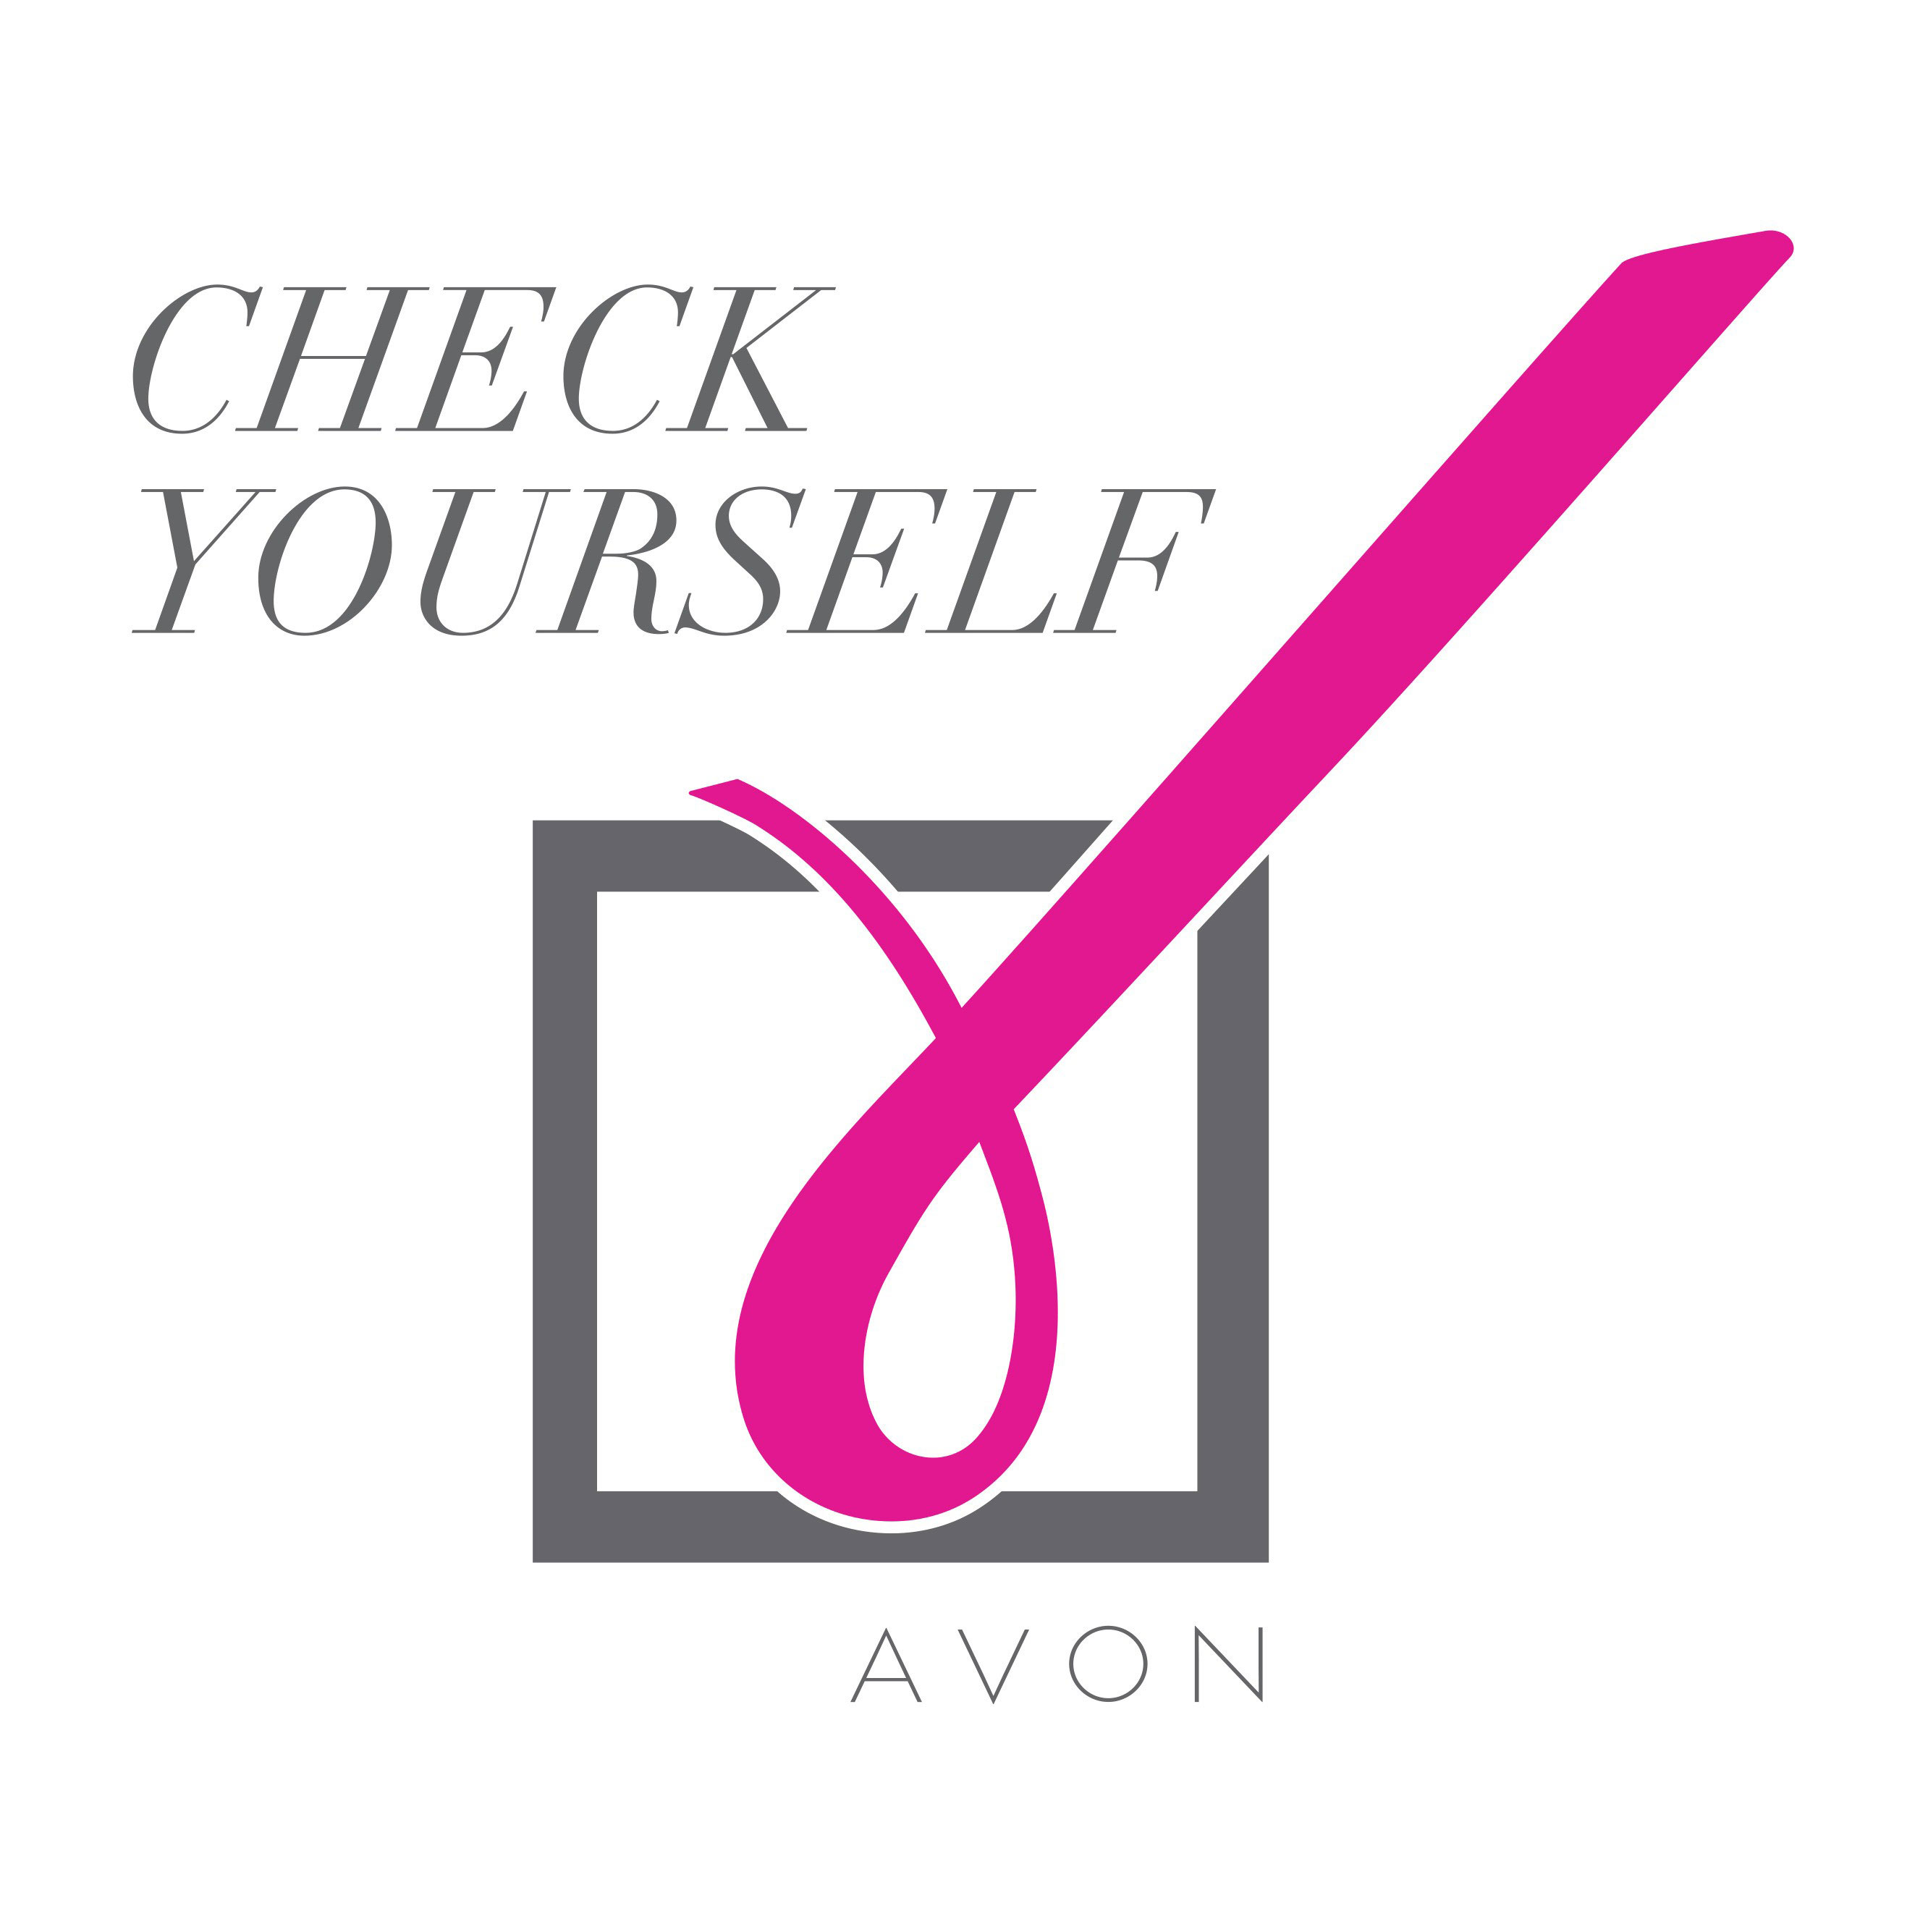 Avon Foundation launches new #CheckYourself logo for Breast Cancer Awareness Month